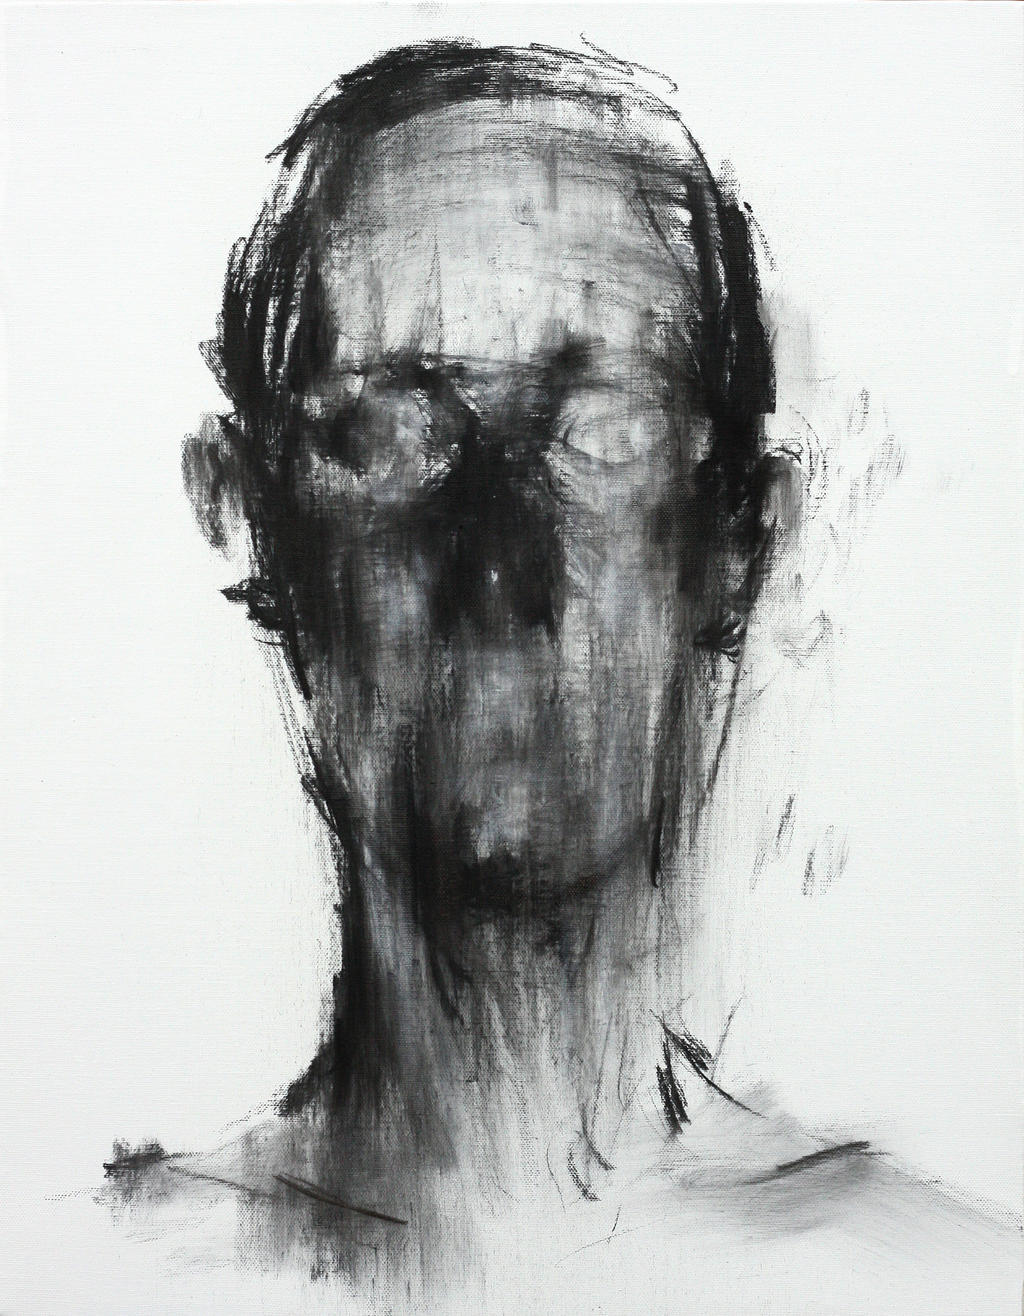 [106] Untitled Charcoal On Canvas 53.2 X 41 Cm by ShinKwangHo